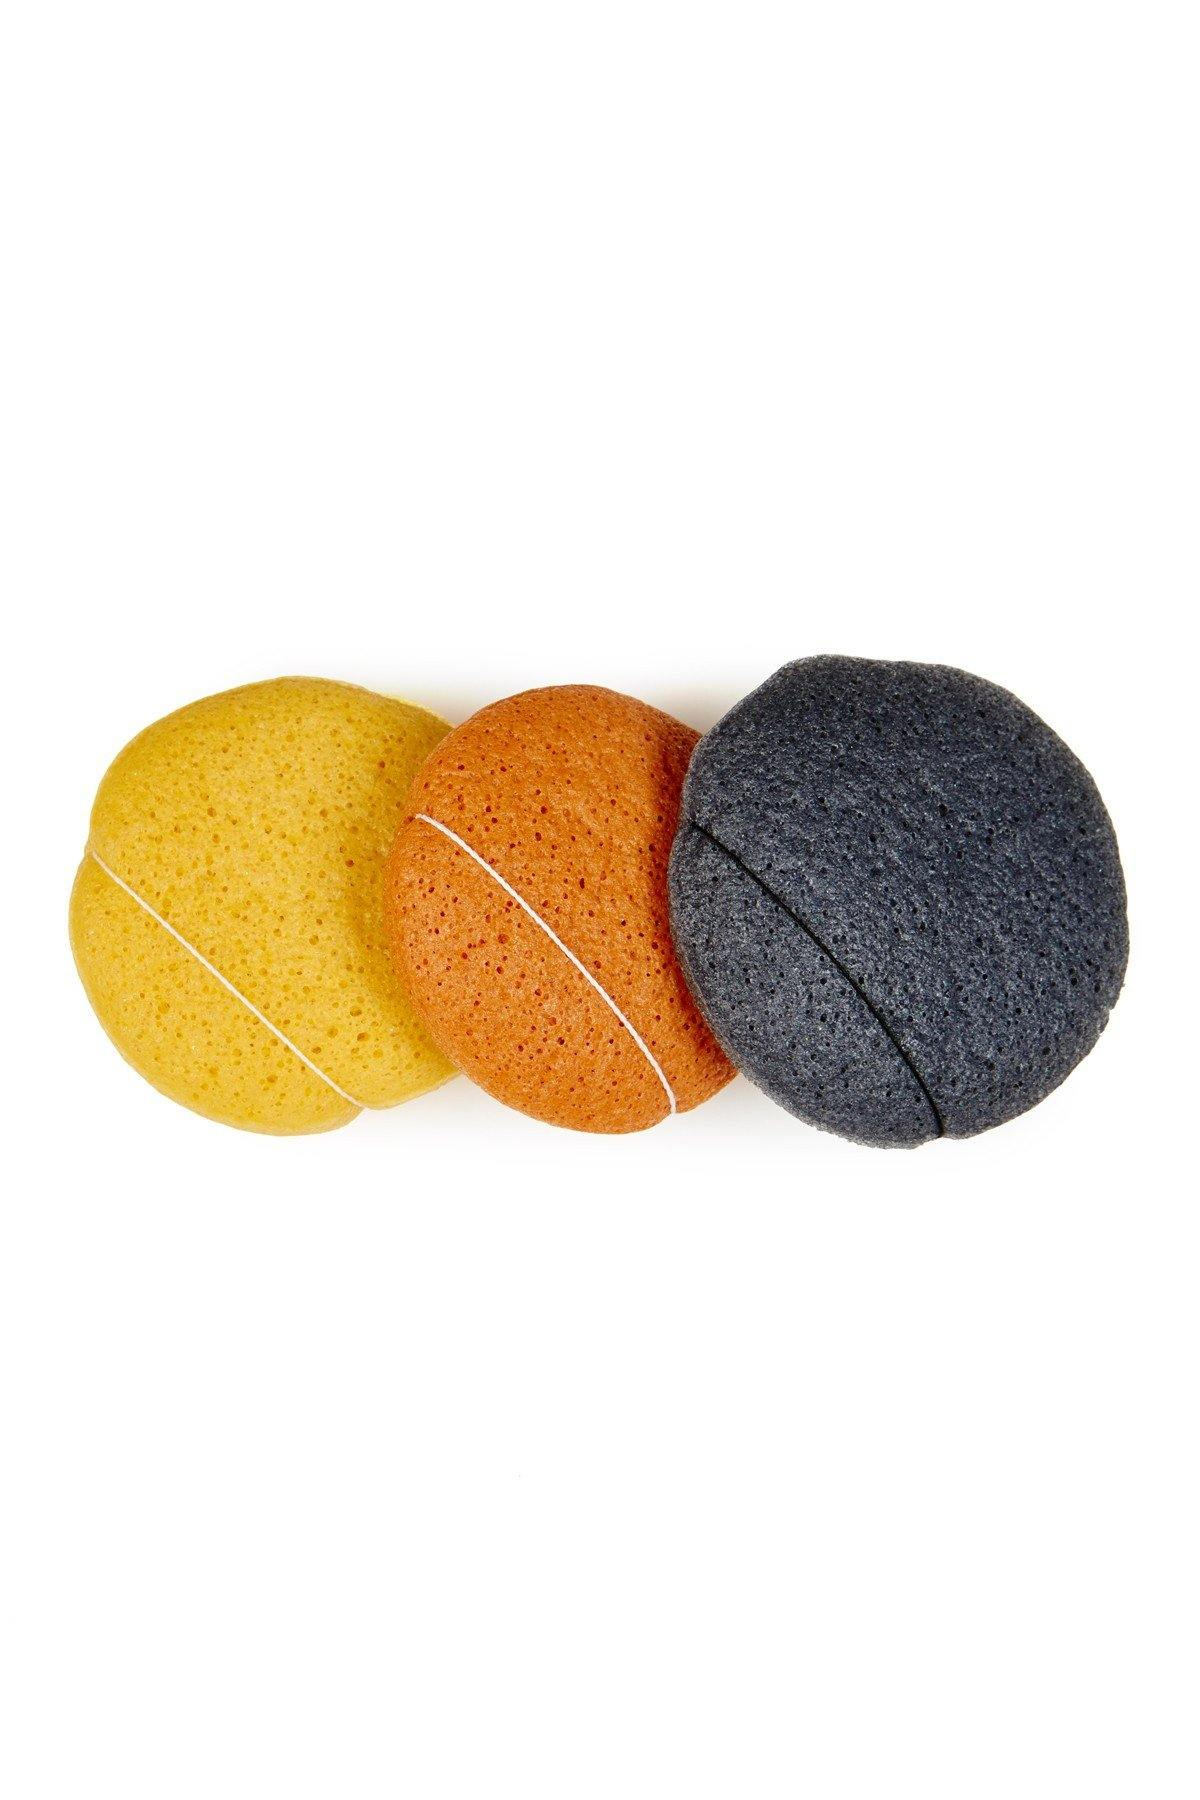 Konjac Beauty Sponge - 3-Piece Set